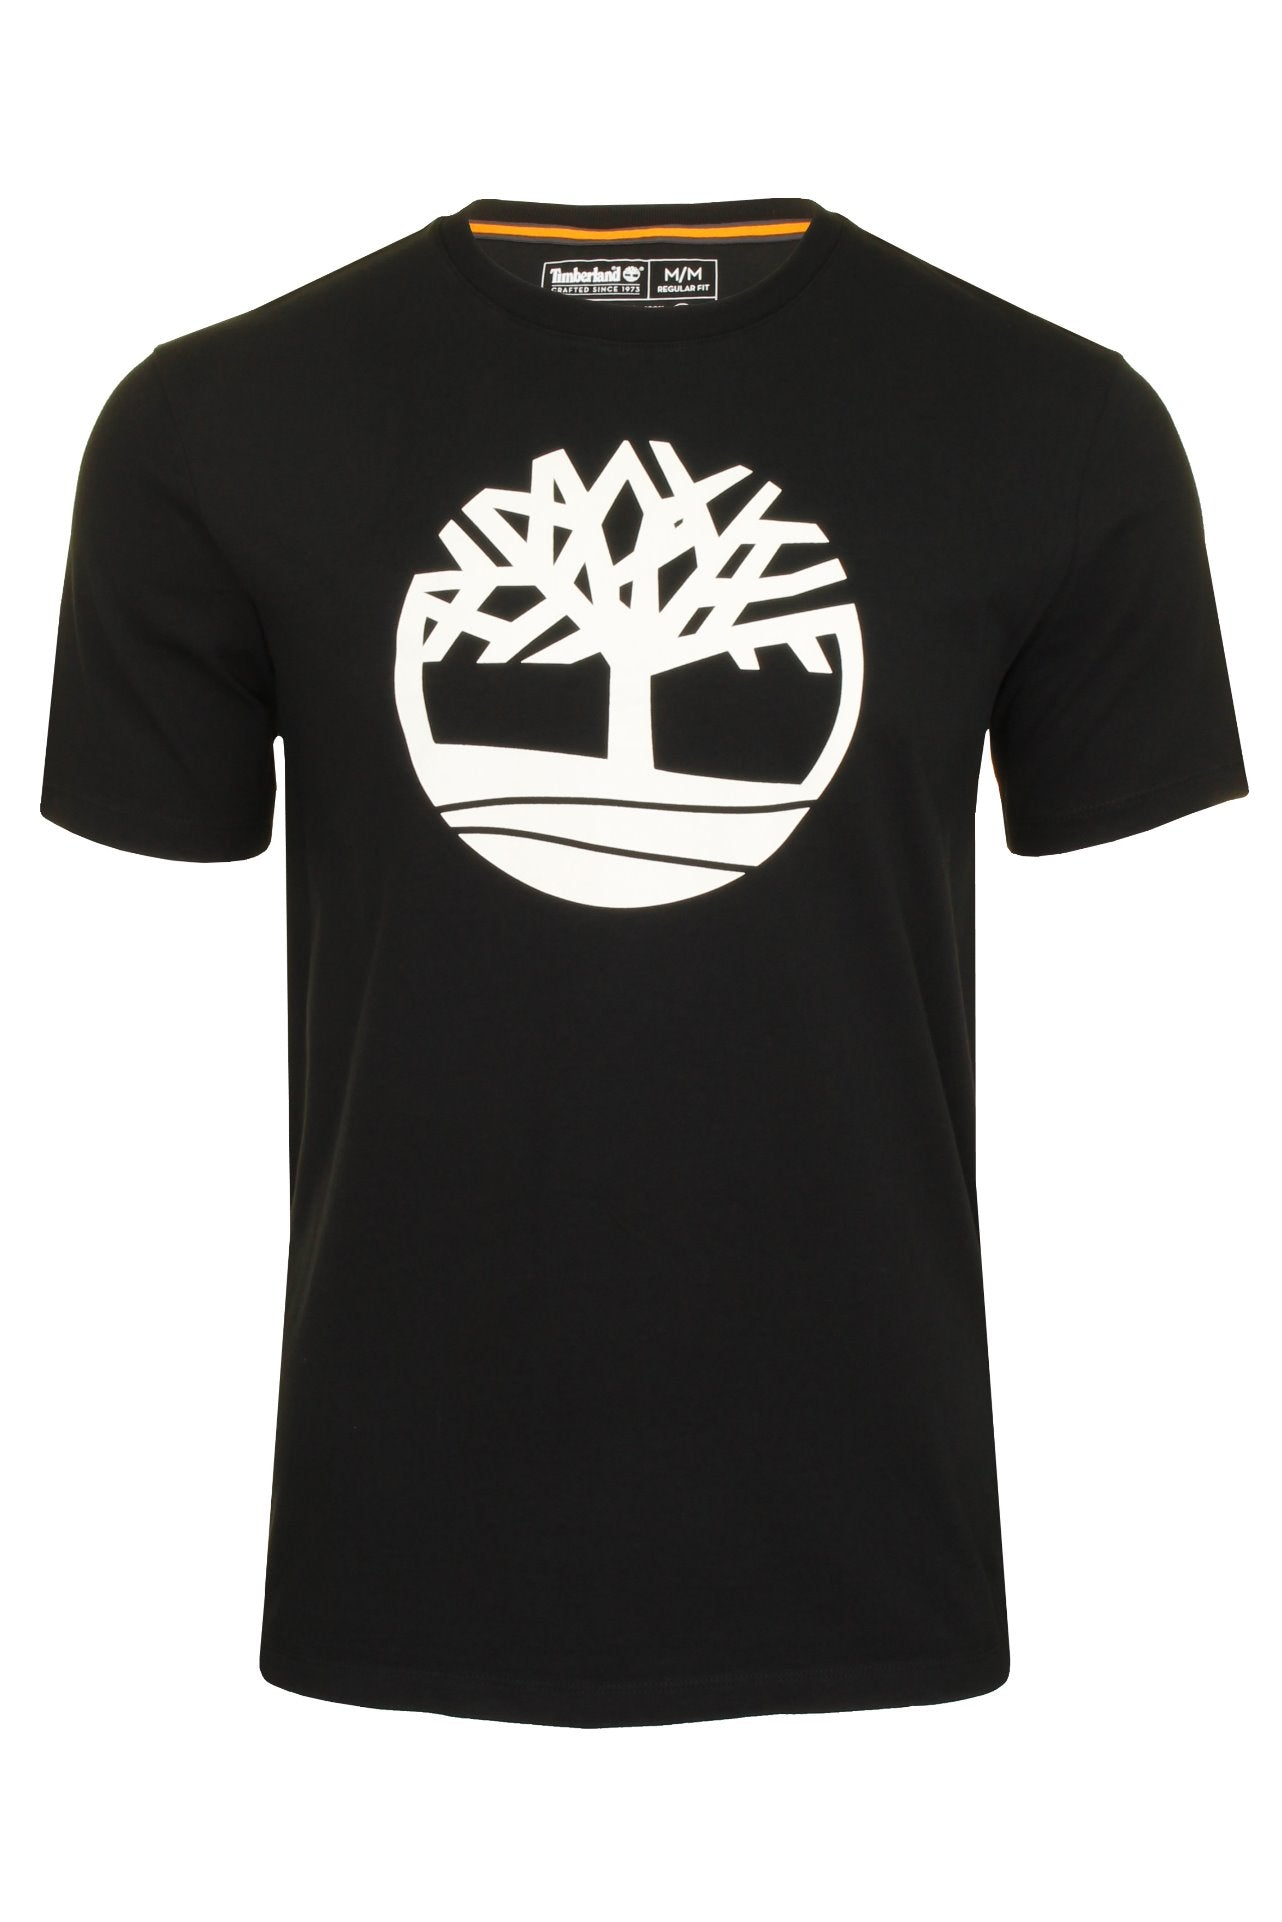 Timberland 'Kennebec River Tree Logo' T-Shirt - Short Sleeved_01_Tb0A2C2R_Black